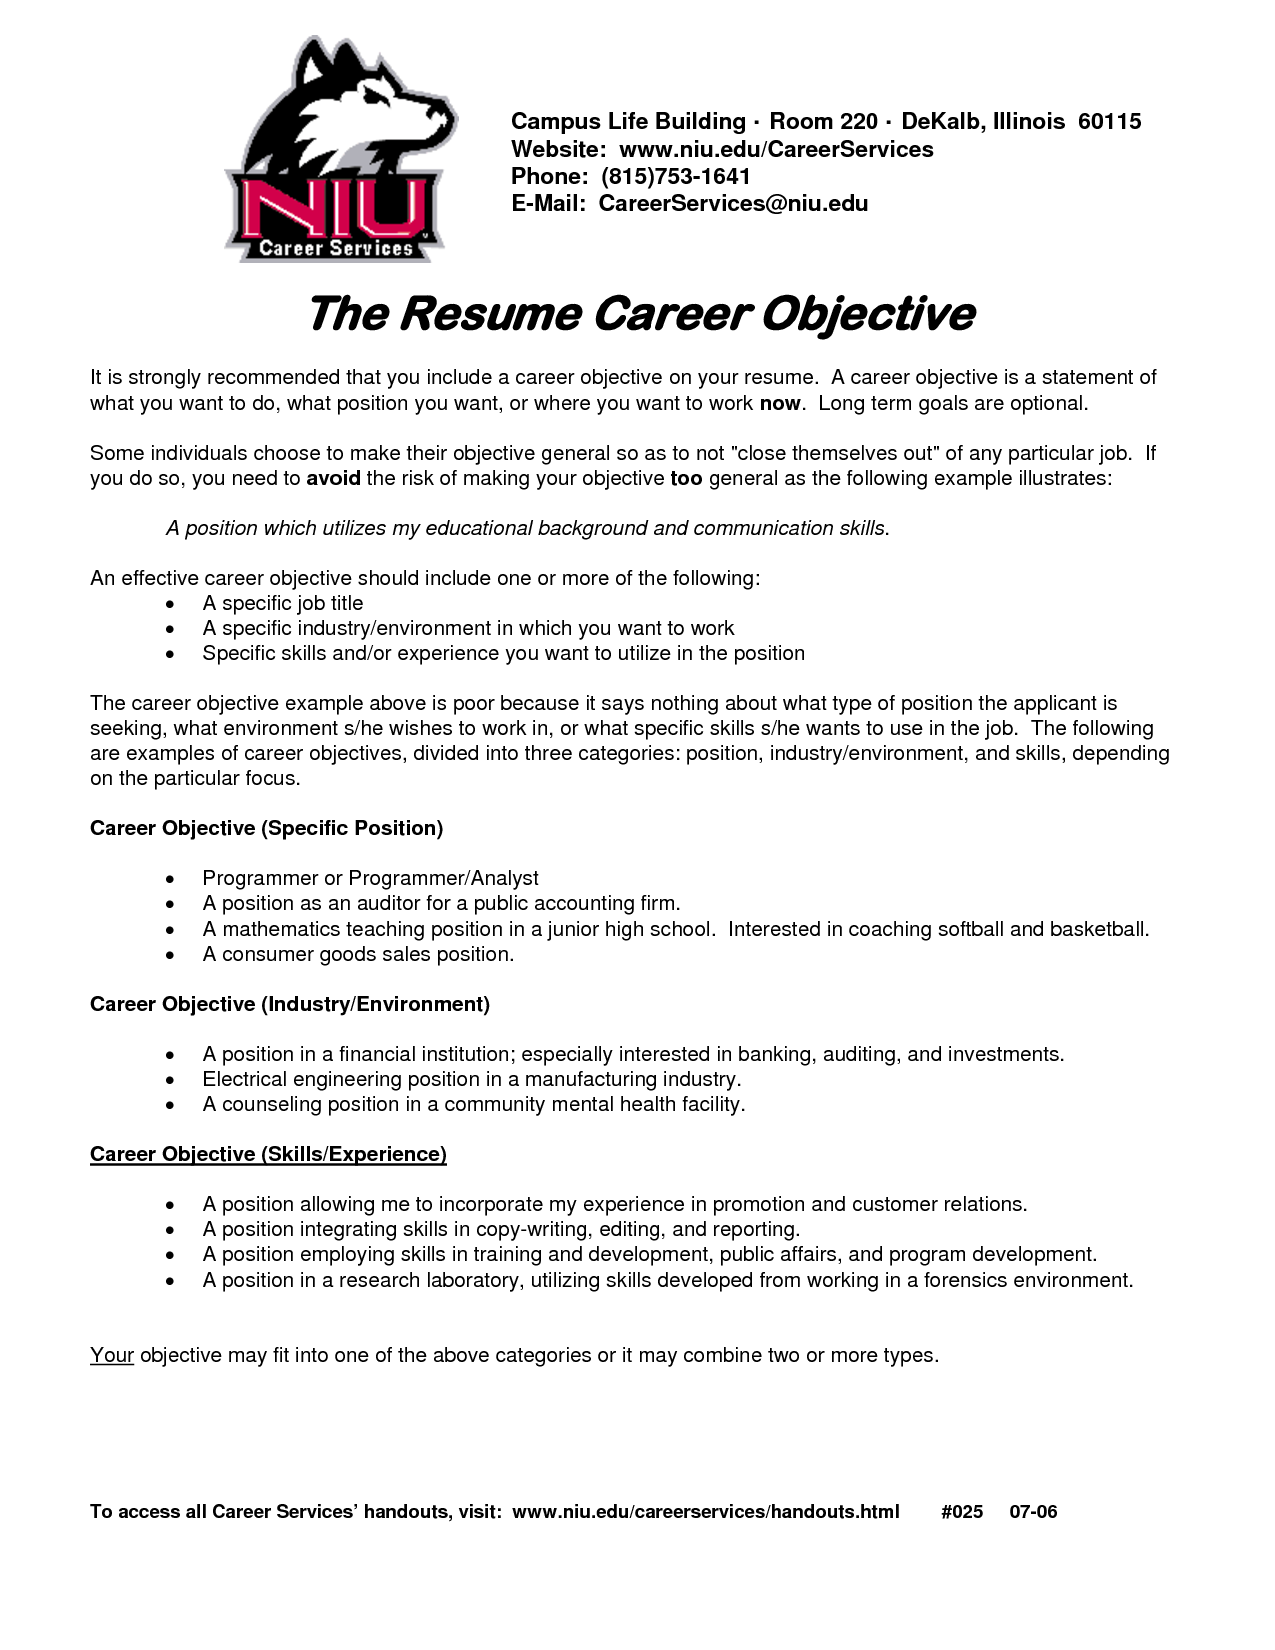 Samples Of Resume Objectives Httpswwwgooglesearchqobjective Resume  Resume